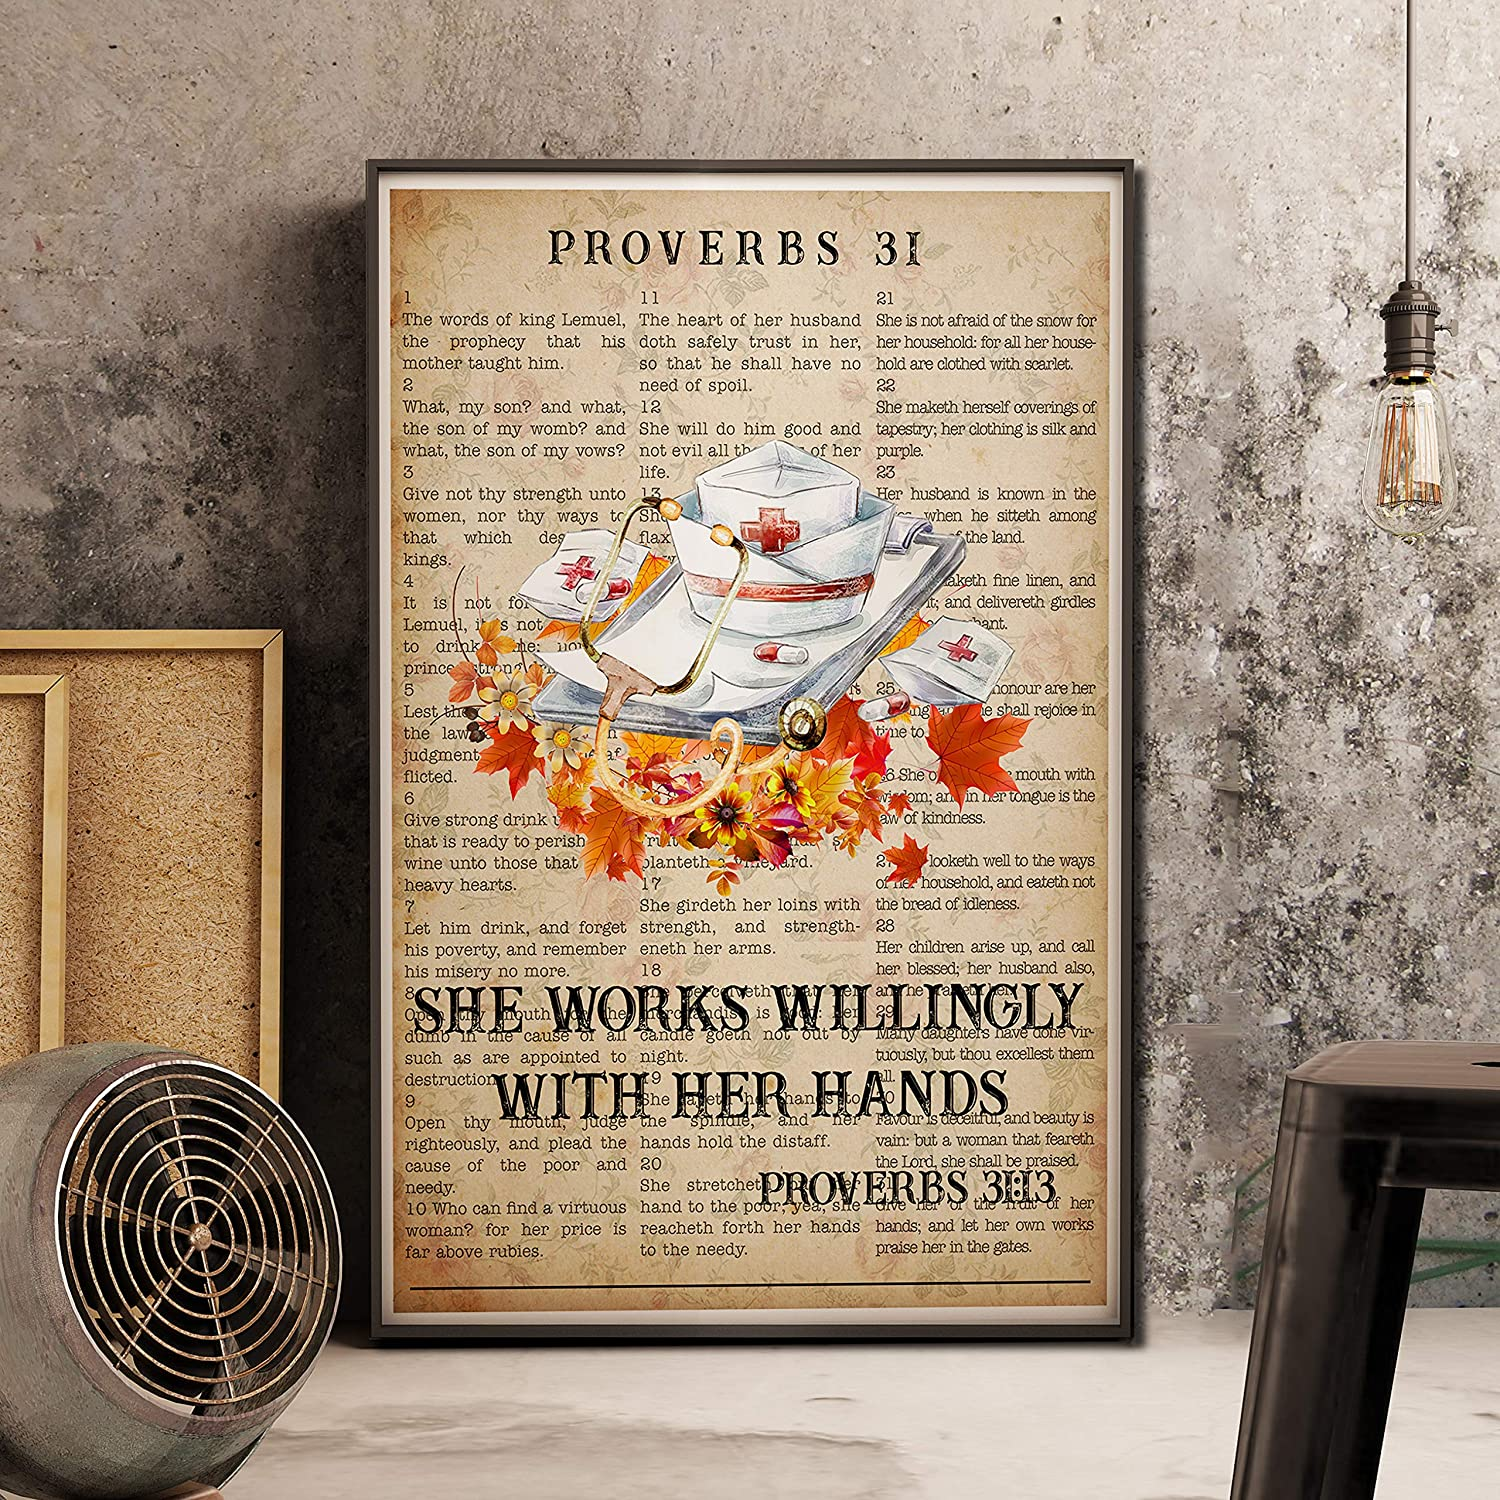 Minitowz She Works Willingly with her Hands Poster, Nurse Halloween Prints Poster, Nursing Art, Nurse Wall Art, Nurse Gift, Nurse Office Decor, Nurse Appreciation Gift